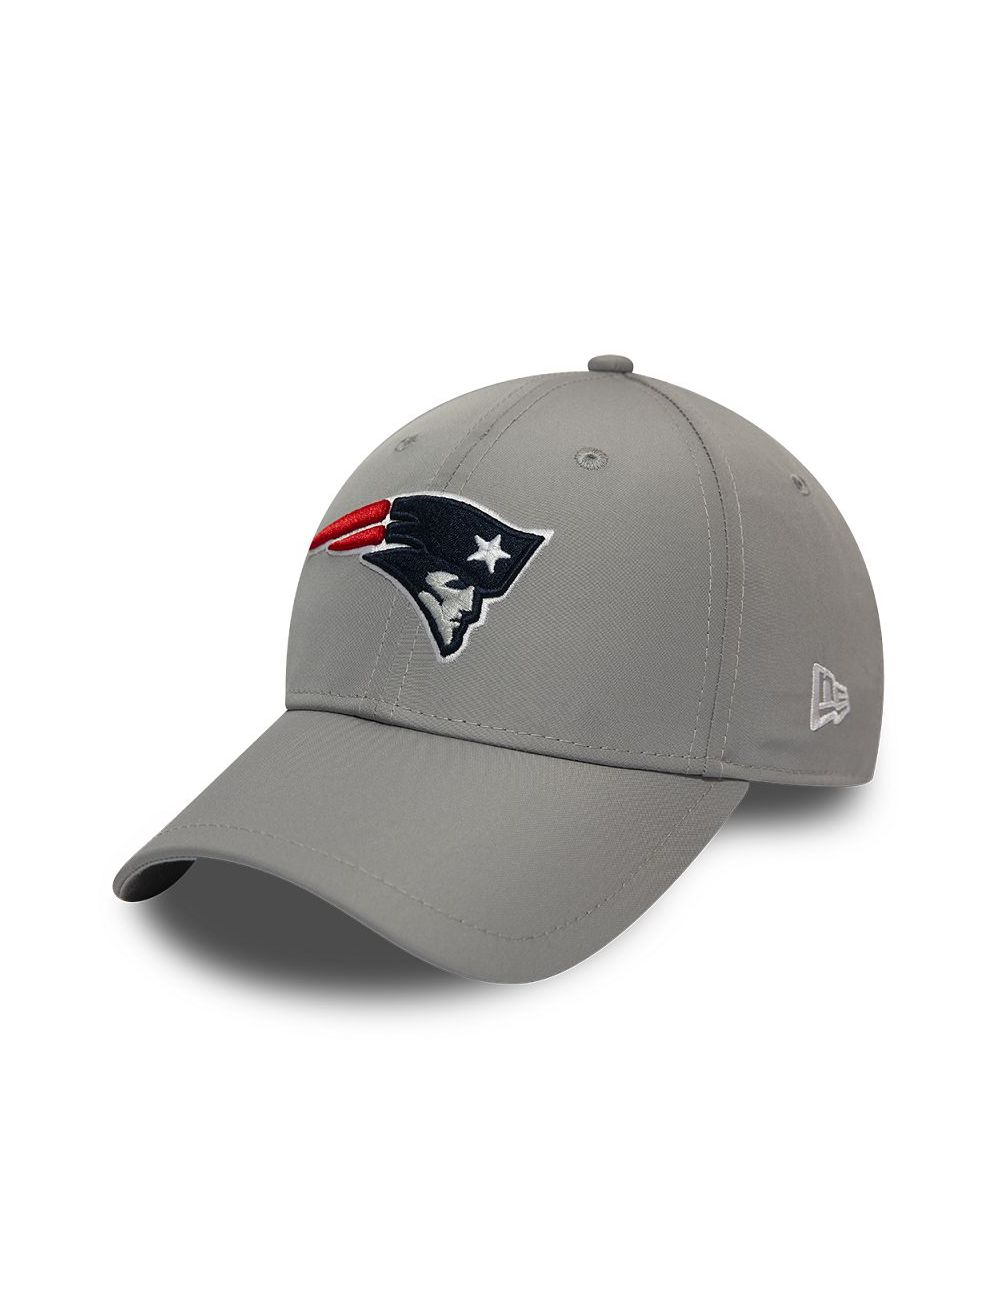 Casquette New Era 9FORTY Winter New England Patriots grise 12134692